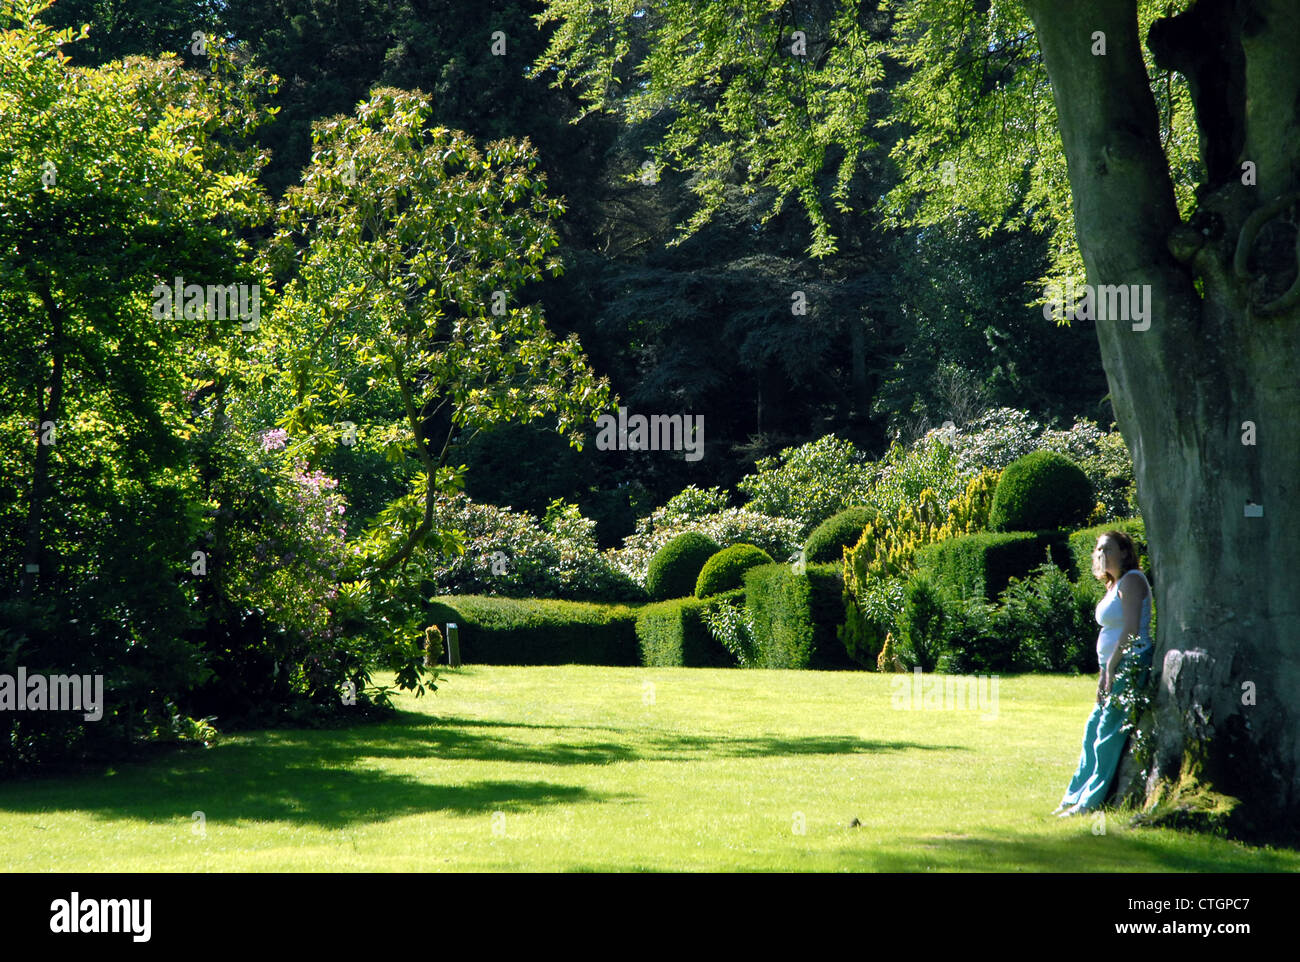 A woman enjoys the grounds of Hergest Croft Gardens in Kington, Herefordshire. - Stock Image